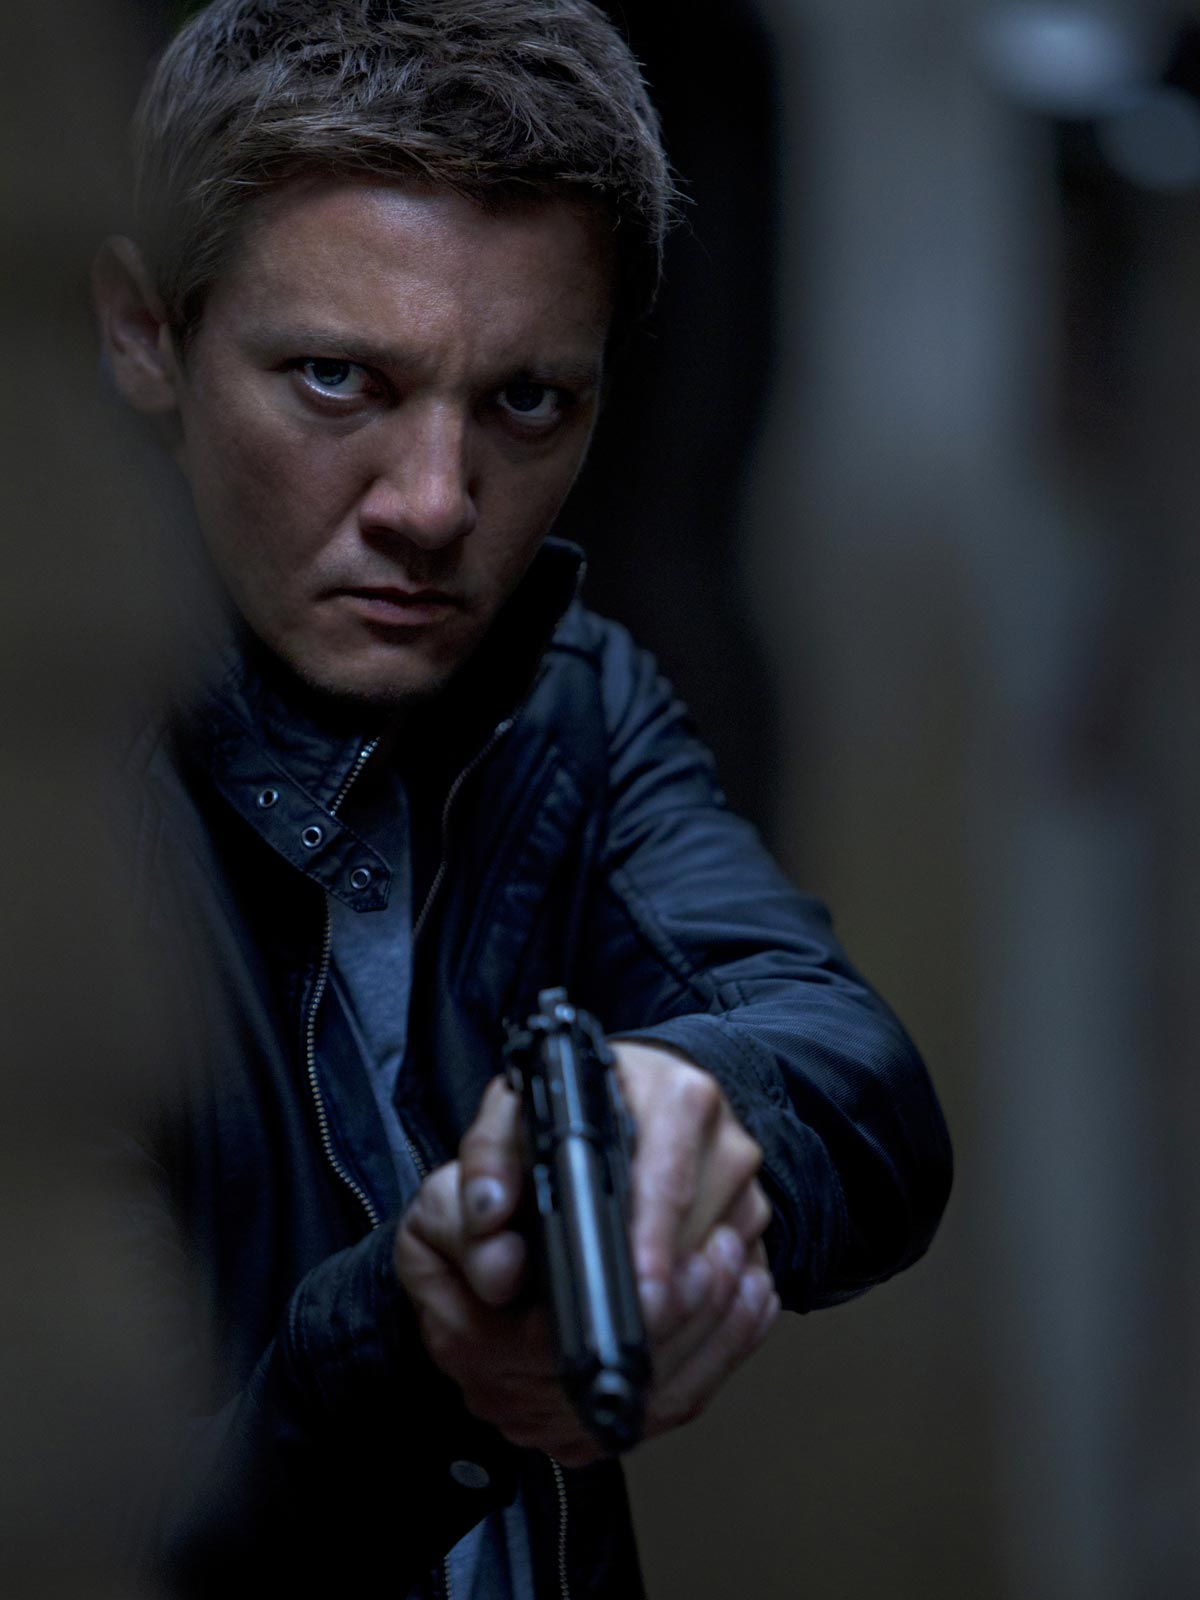 Untitled Bourne Sequel with Jeremy Renner (Bourne 6)